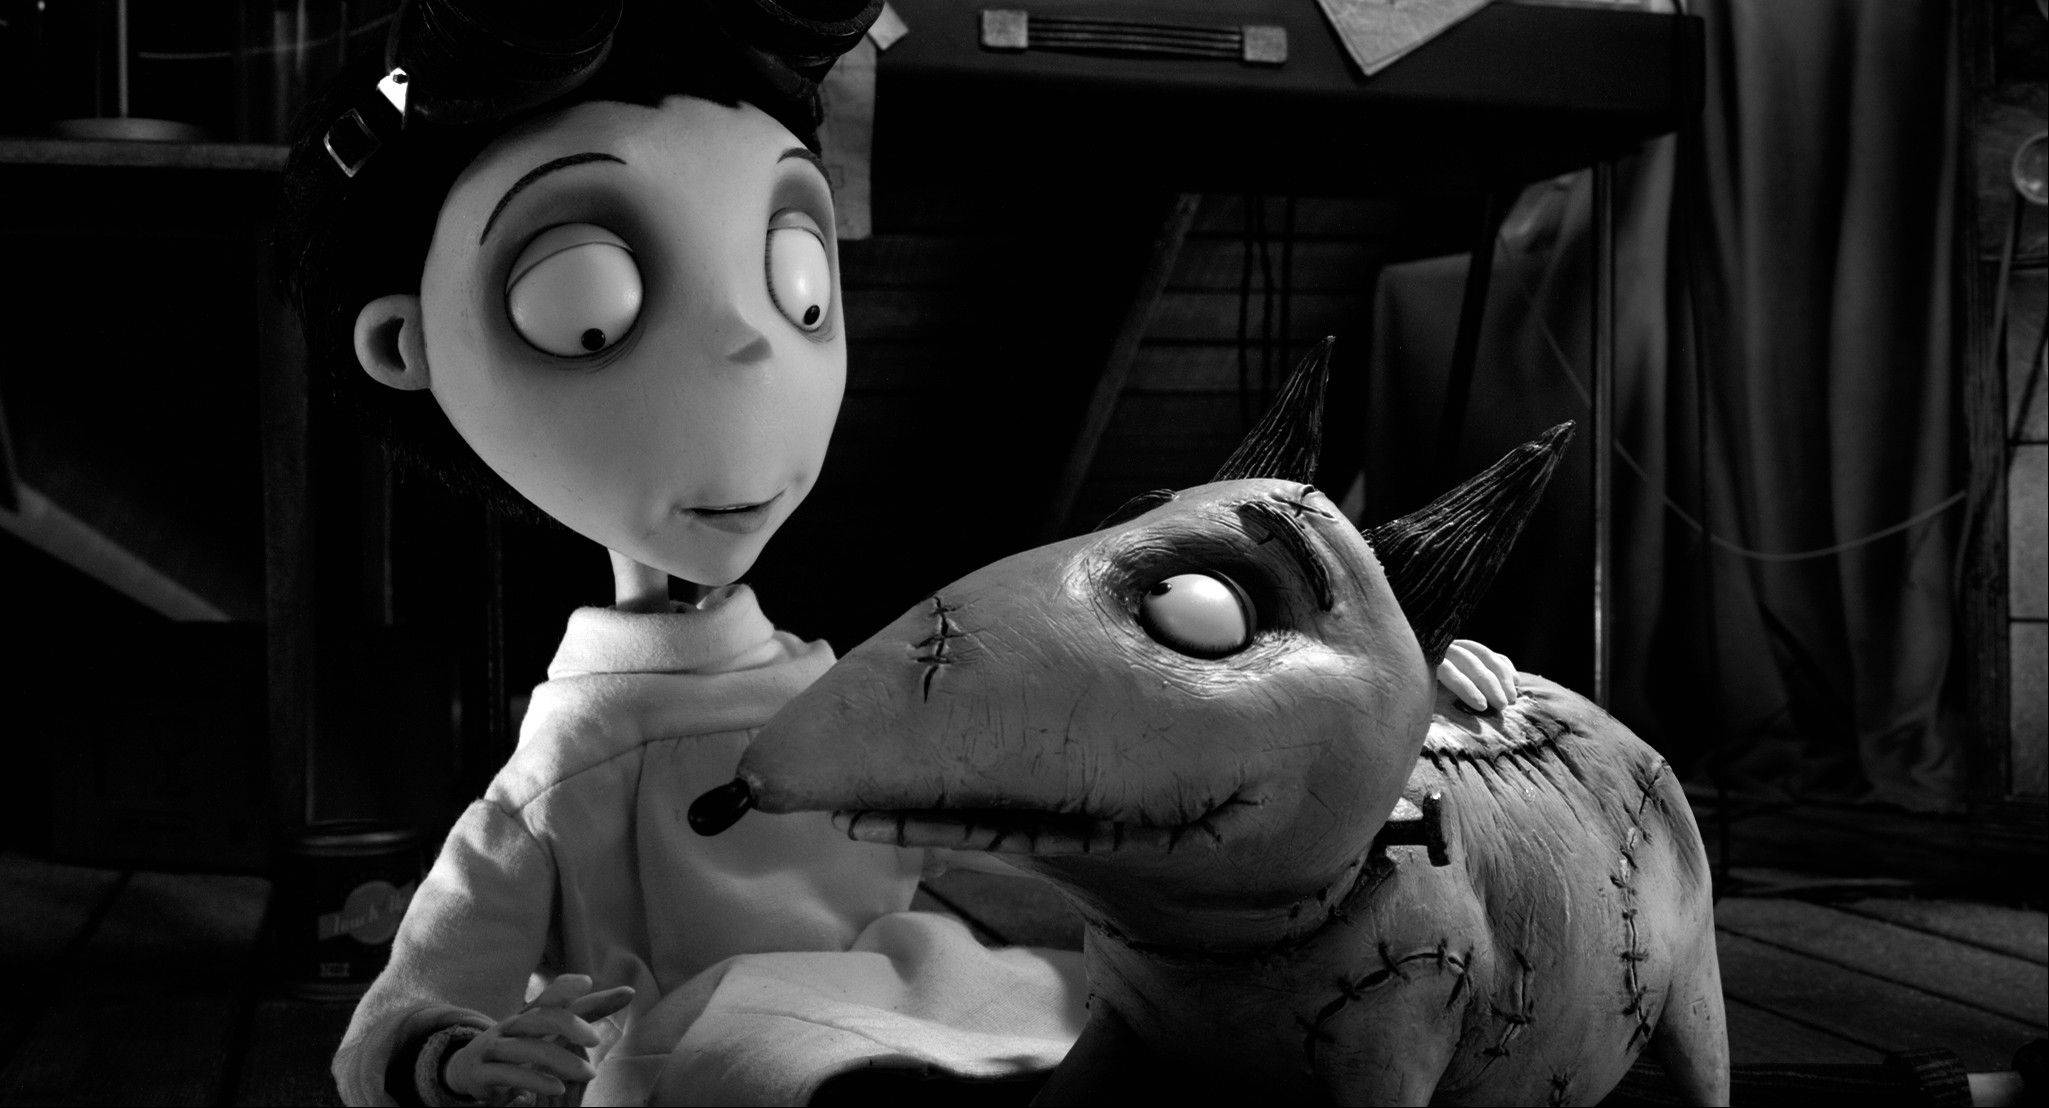 """Frankenweenie"" a stop-motion animated comedy by director Tim Burton, is new on DVD."